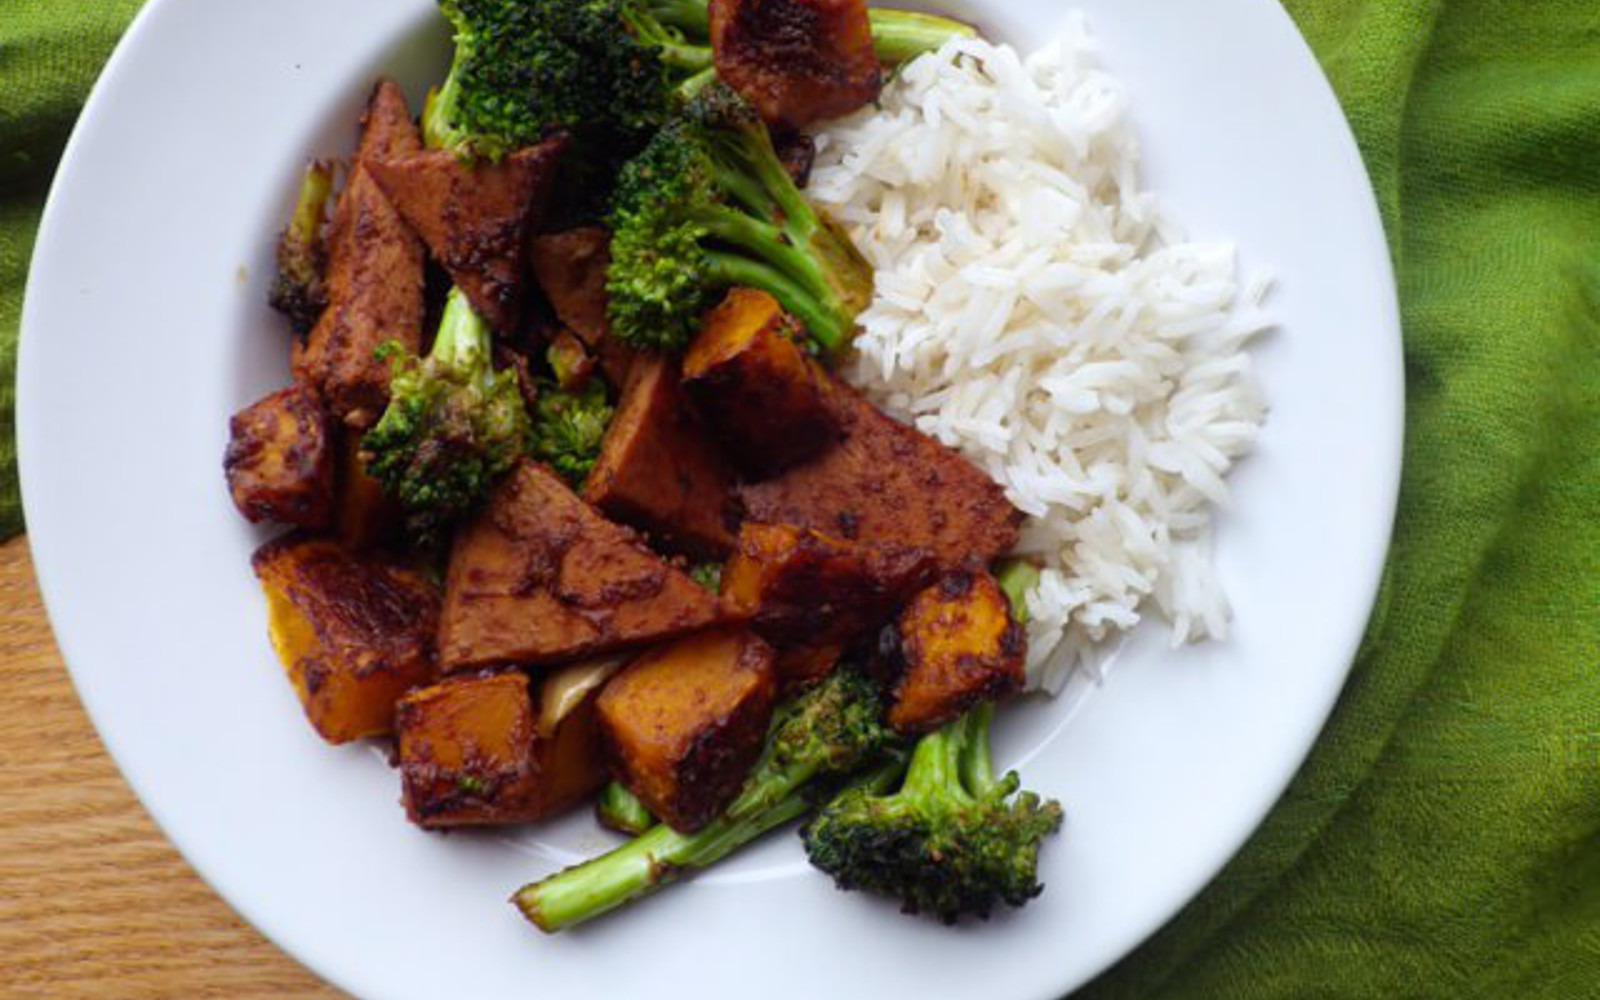 Maple Miso Tofu With Butternut Squash and Broccoli